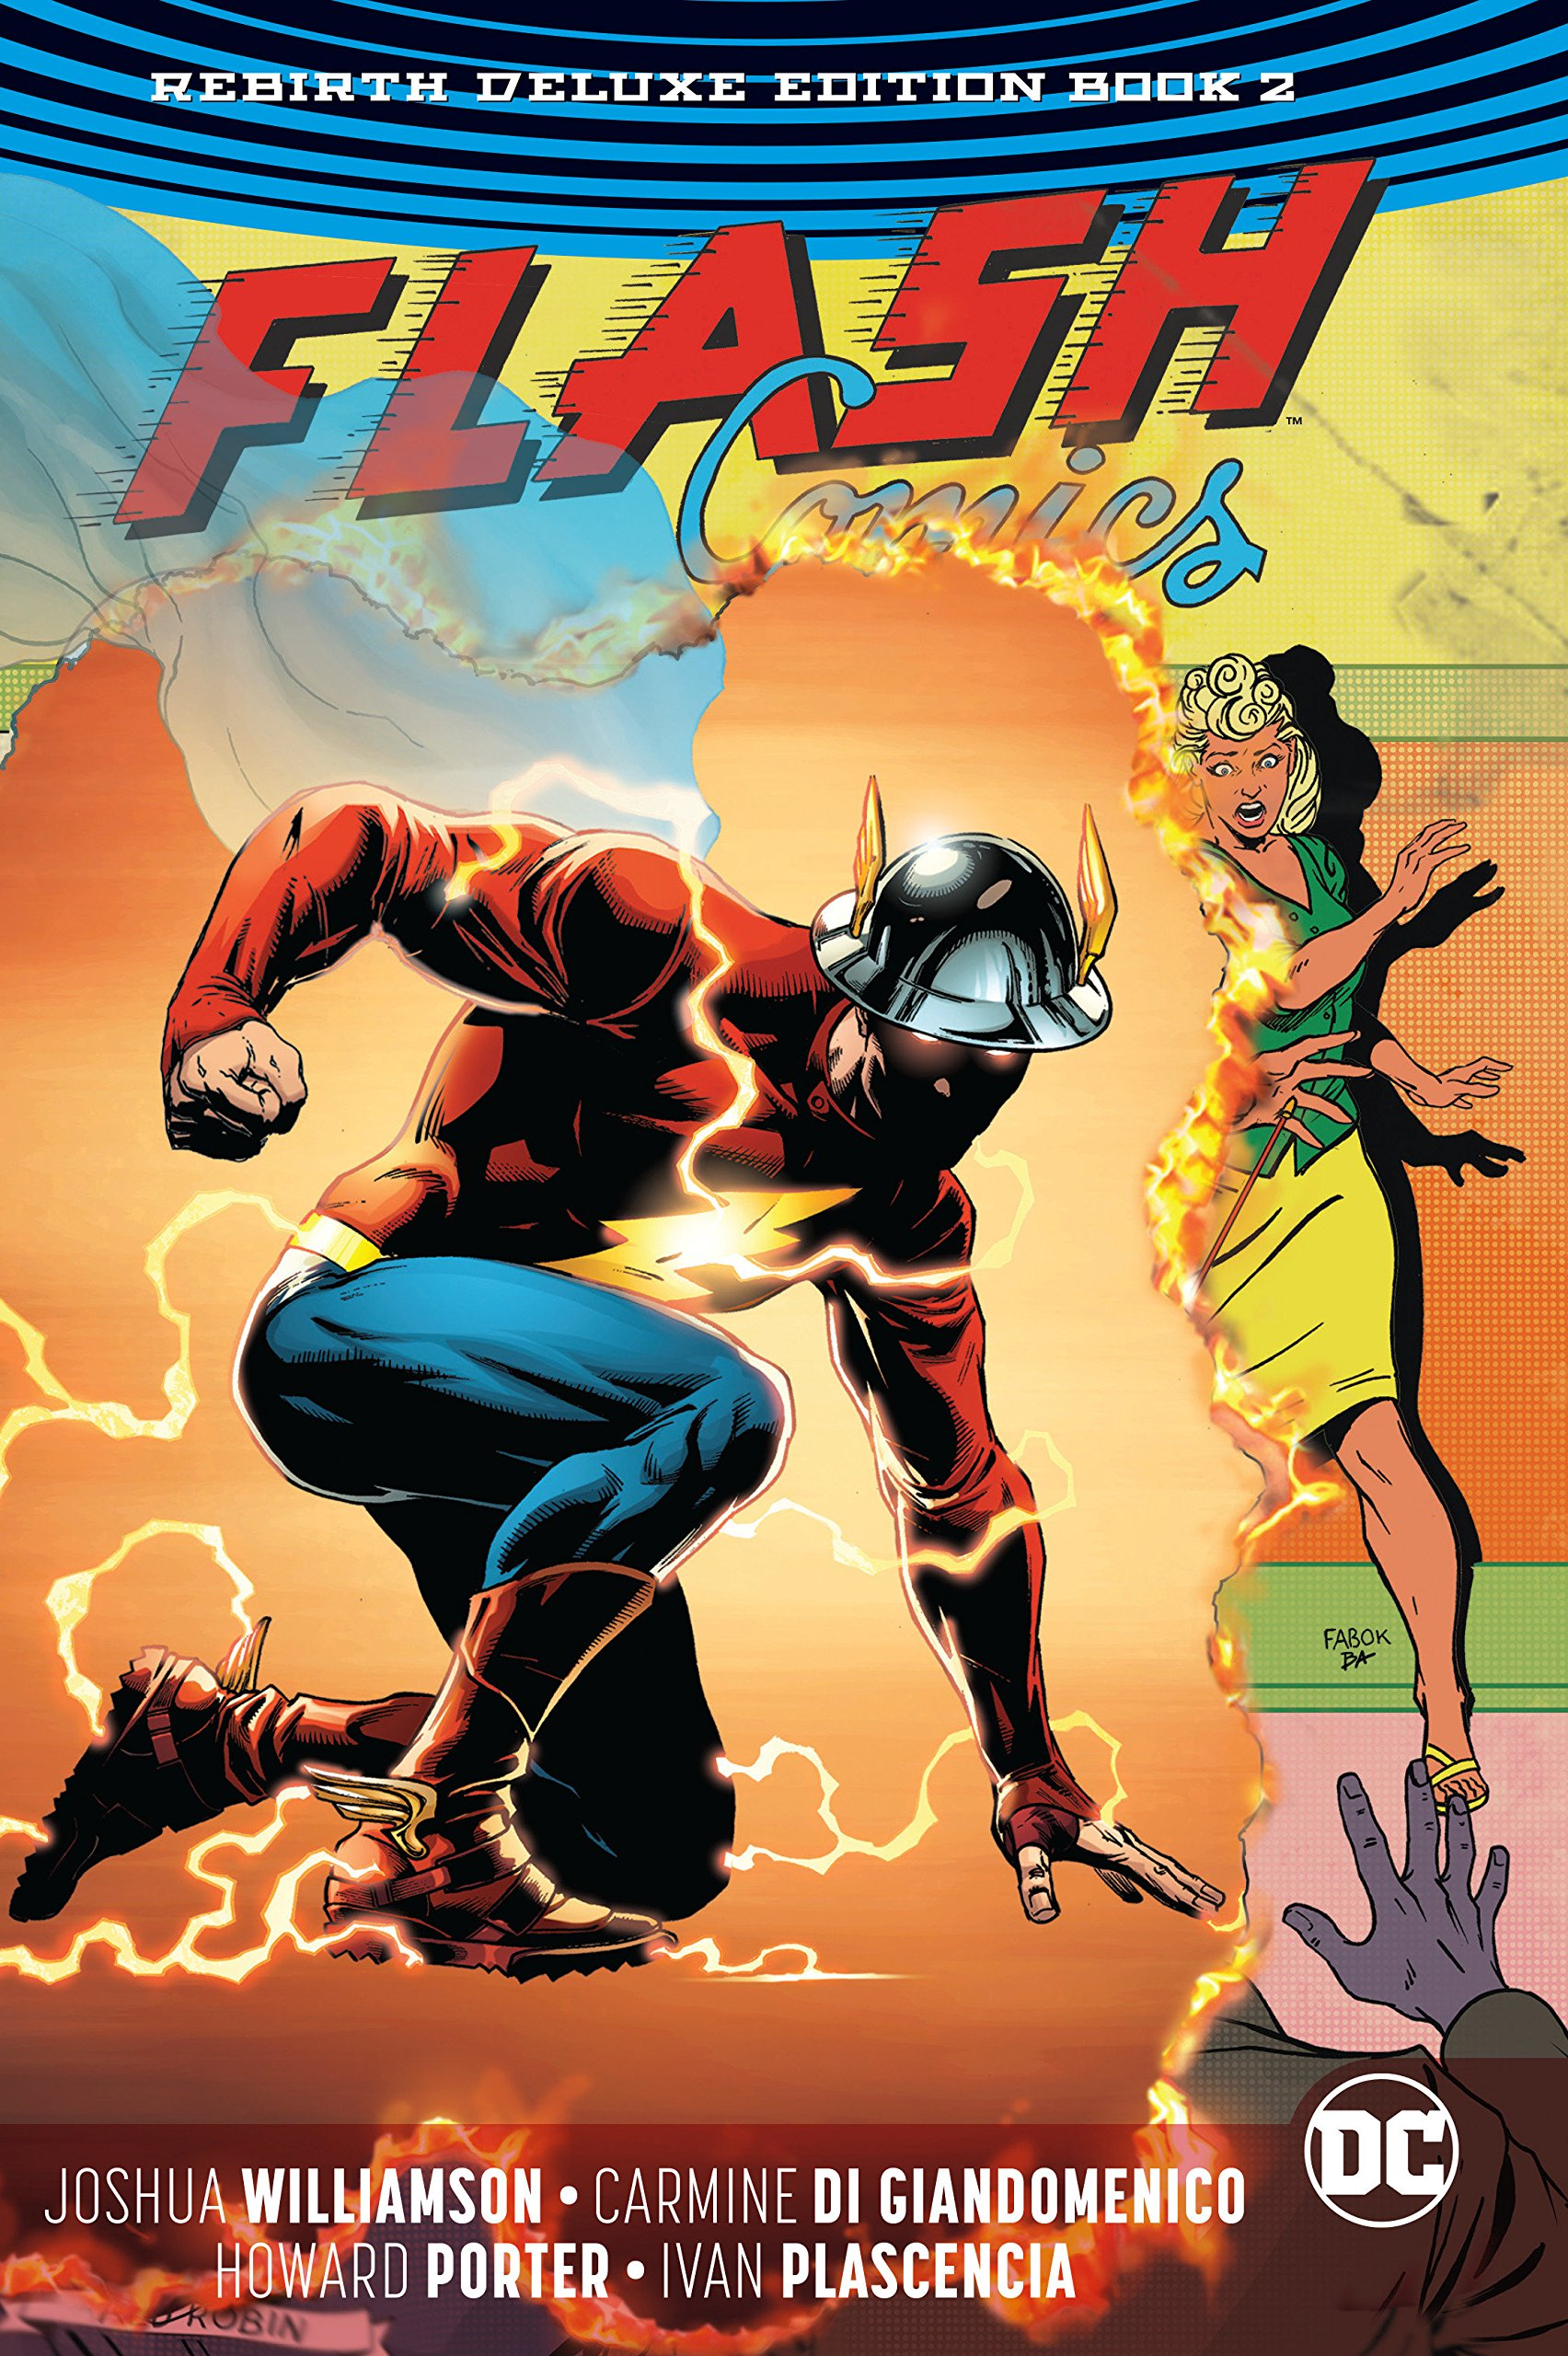 Read Online The Flash: The Rebirth Deluxe Edition Book 2 (Flash: Rebirth) pdf epub